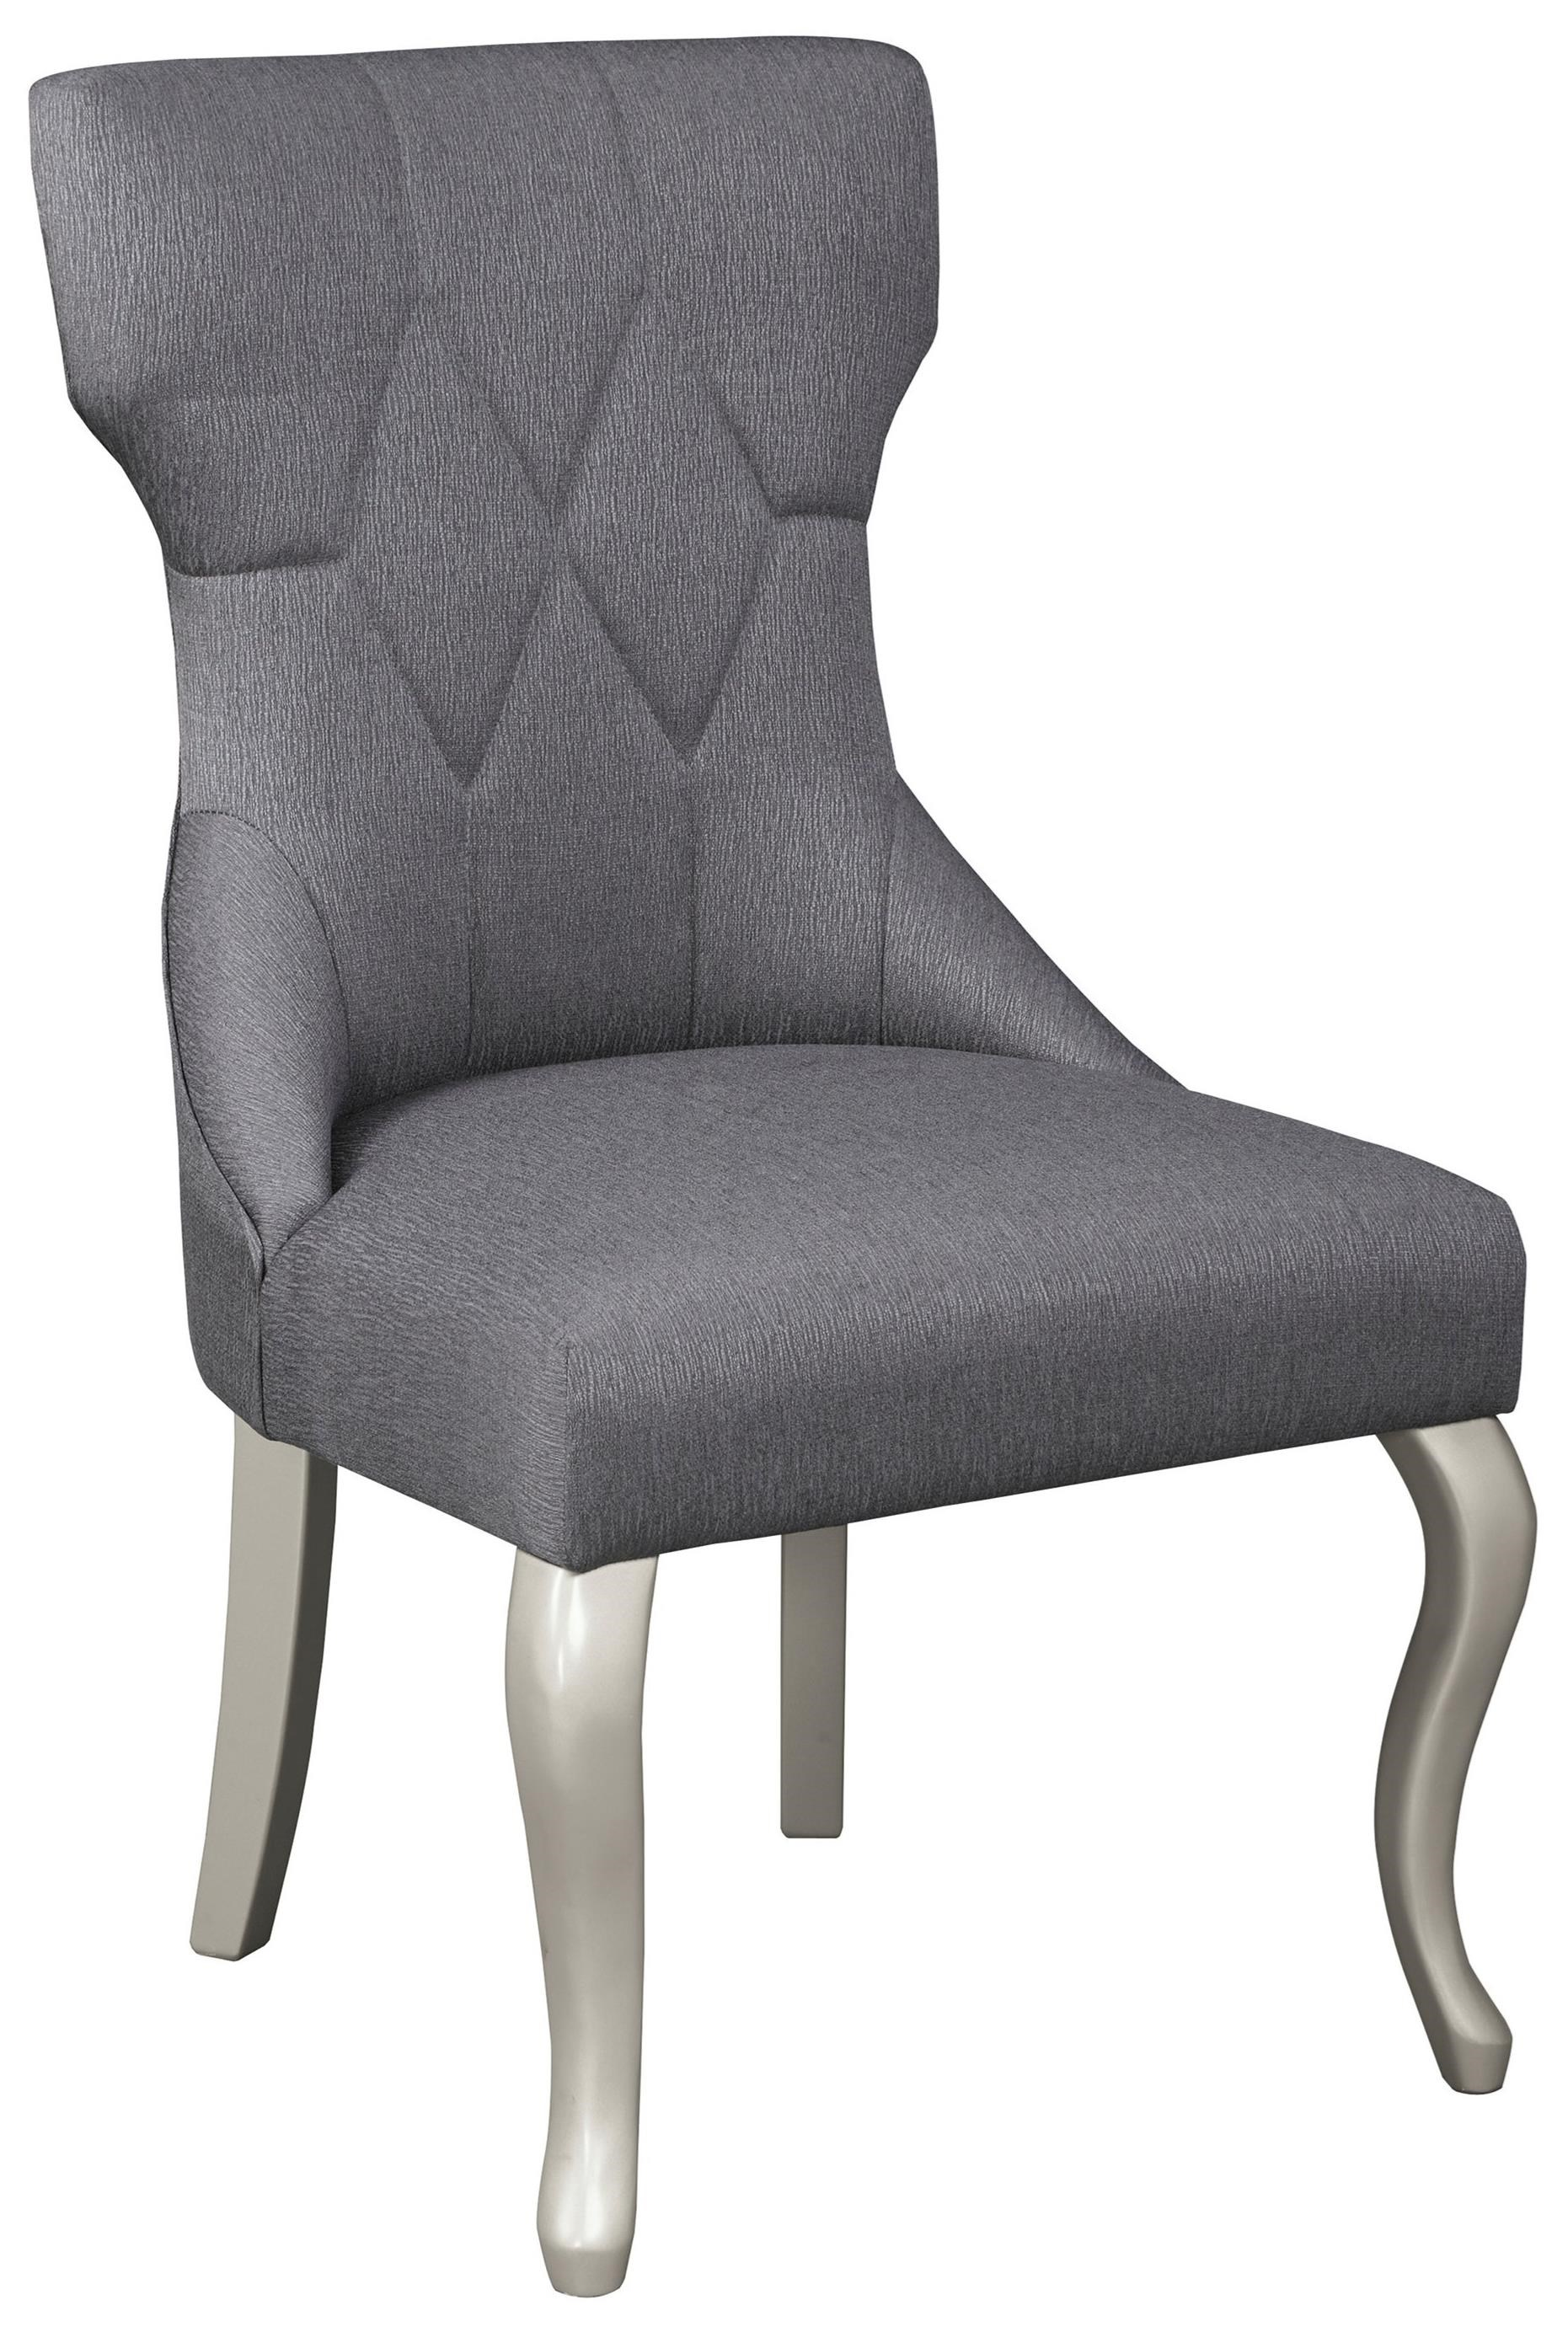 Coralayne Dining Upholstered Side Chair by Ashley (Signature Design) at Johnny Janosik